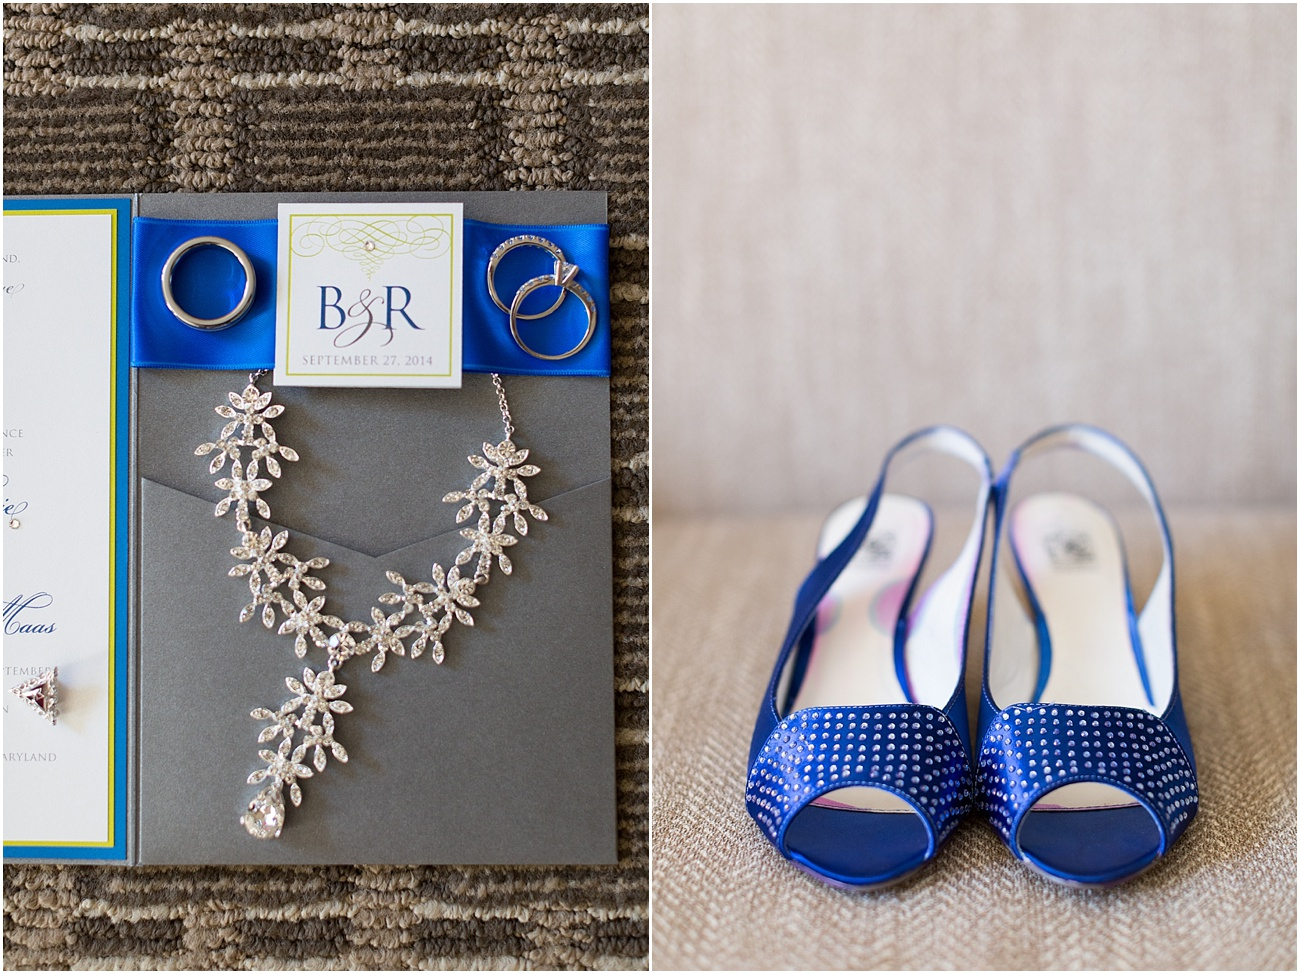 Tabrizis_Baltimore_Maryland_Wedding_Photographer_0008